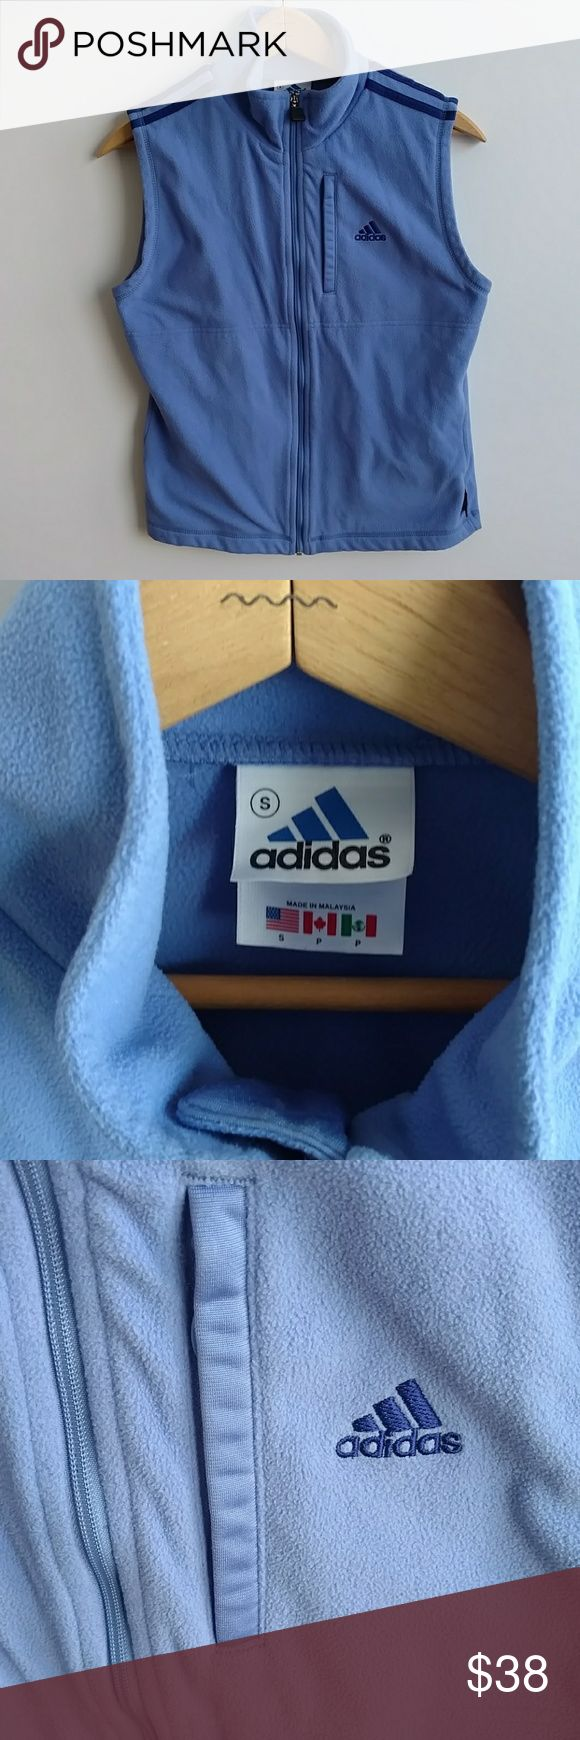 """Adidas Climawarm Small Periwinkle Color Zip Vest Adidas Climawarm periwinkle color zip front vest. Size Small. 100% microfiber polyester. 2 front pockets on the right and left lower half of the jacket and then a 3rd pocket on the front left just to the right of the logo (this is a zip pocket.) This is a great vest that super comfy and a great addition on a cold day! Lay flat measurements: Chest: 35"""" Shoulder: 14.25"""" Length: 21.5"""" Questions? Just ask! adidas Jackets & Coats Vests"""